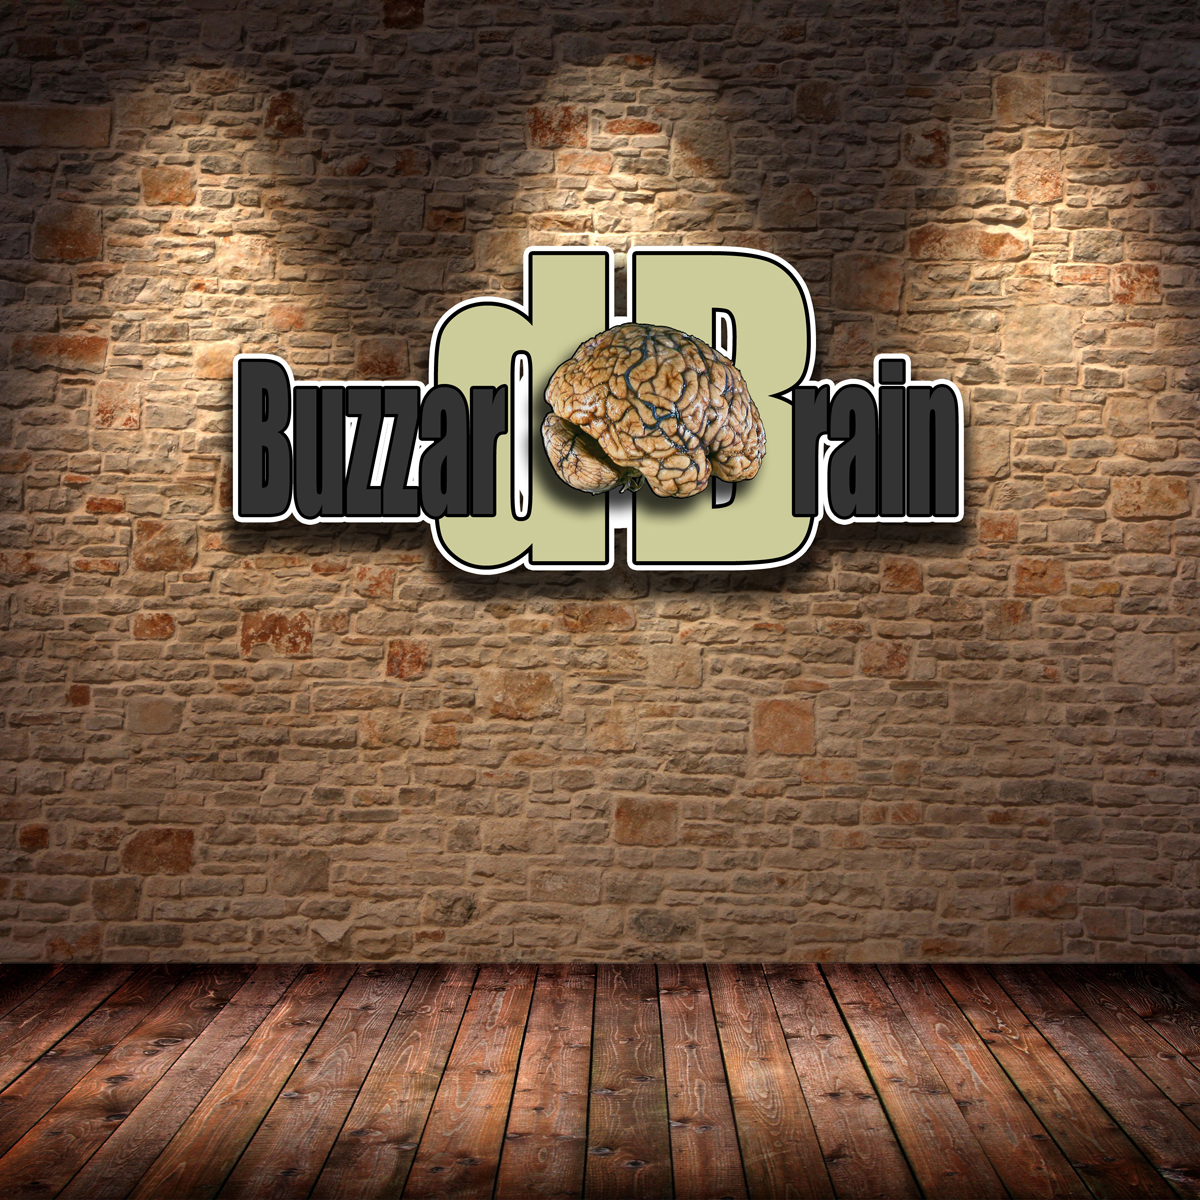 Logo Design by MITUCA ANDREI - Entry No. 23 in the Logo Design Contest Buzzard Brain Logo Design.